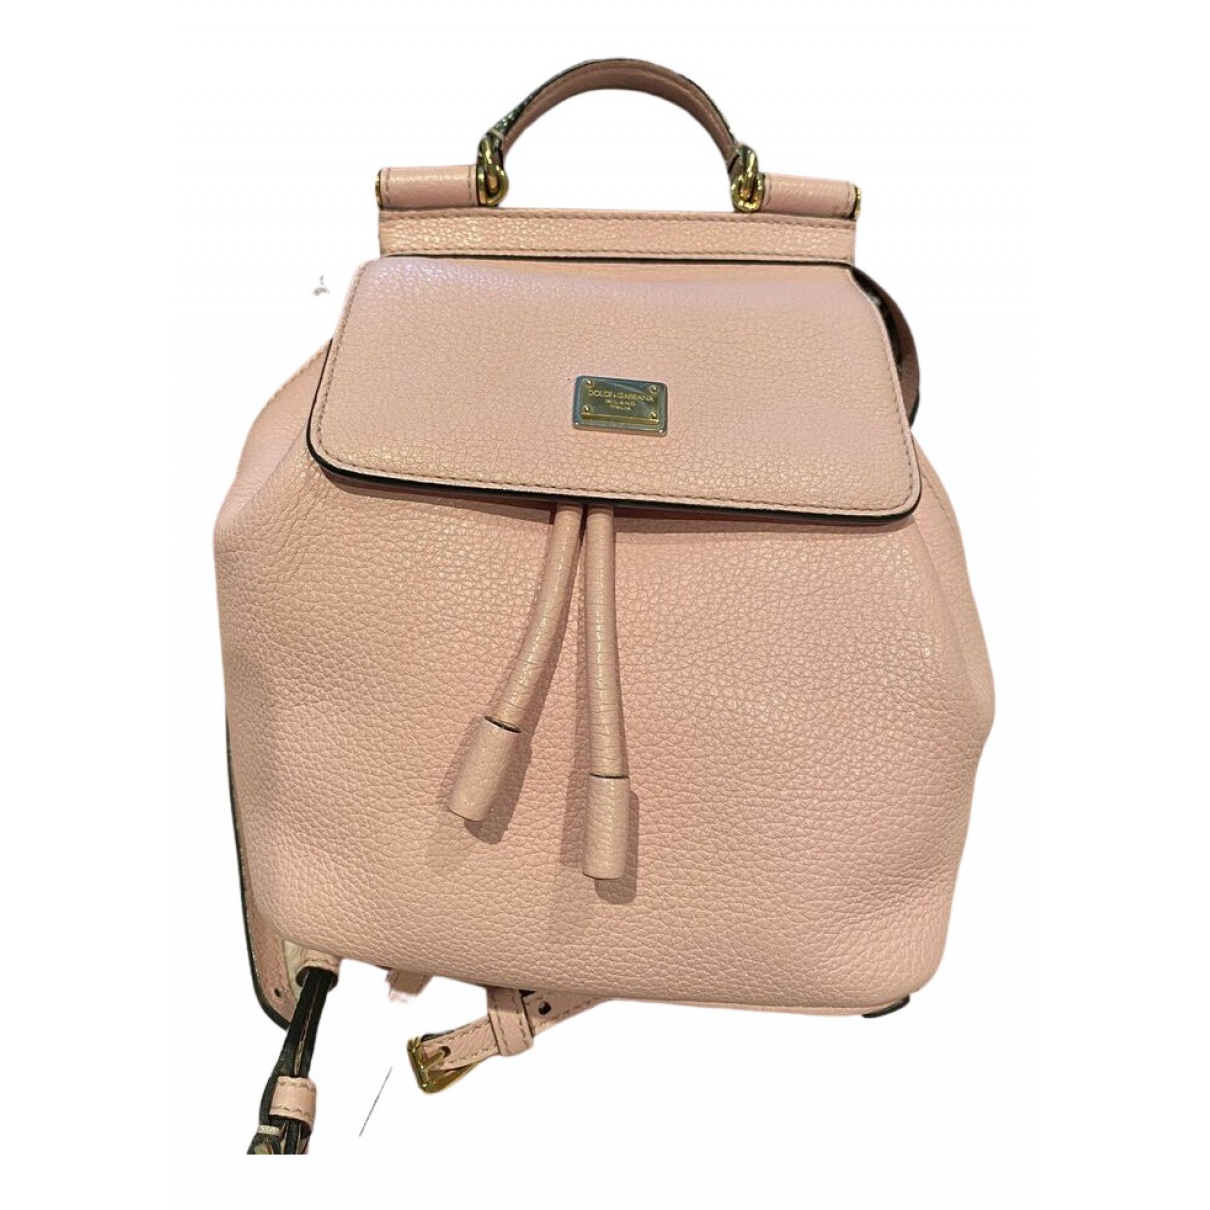 Dolce & Gabbana Sicily Pink Leather backpack for Women \N